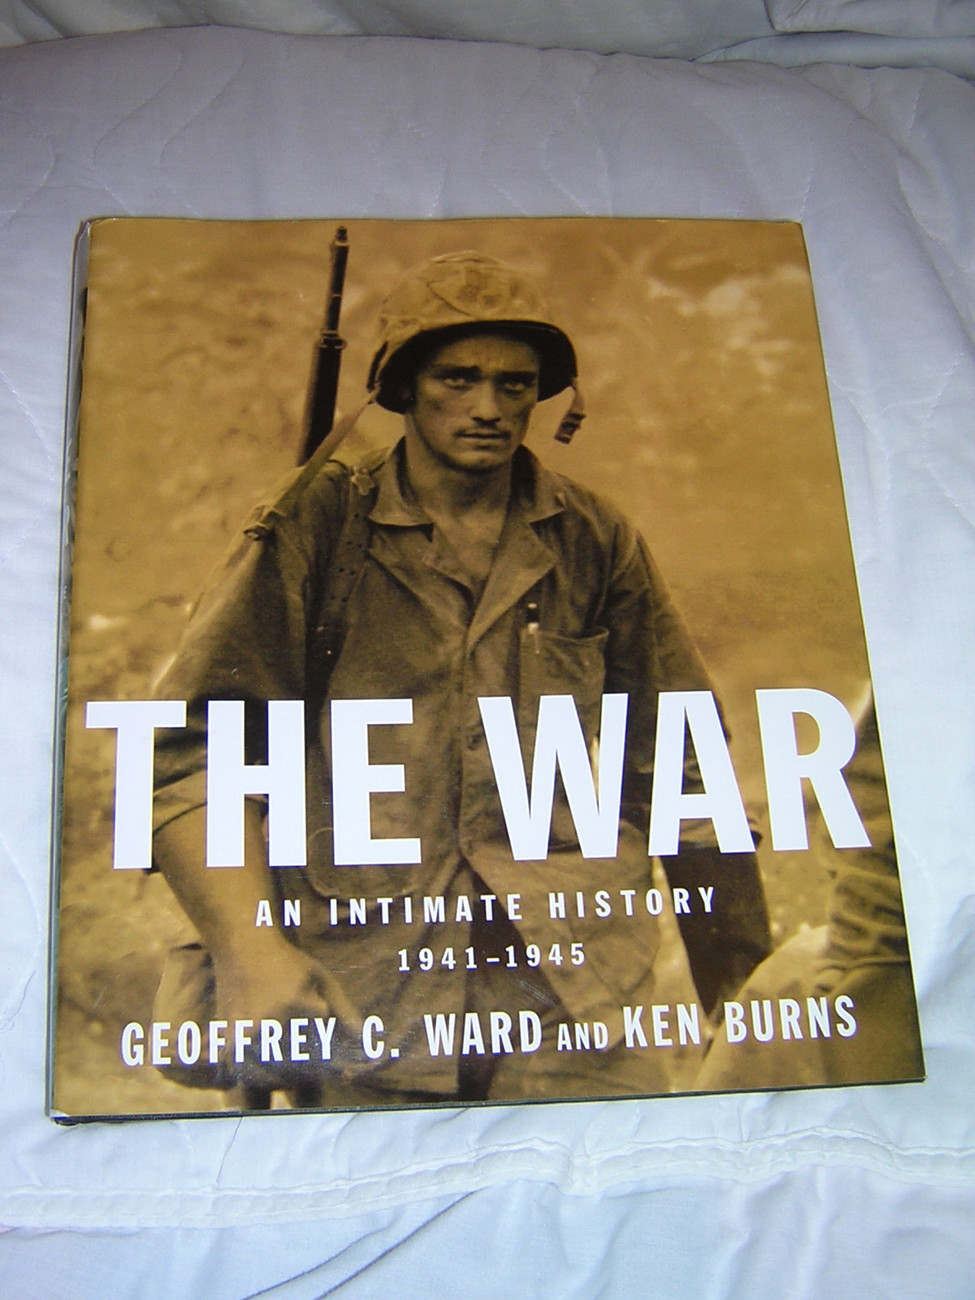 The War: An Intimate History 1941-1945 by Ken Burns and Geoffrey C. Ward.